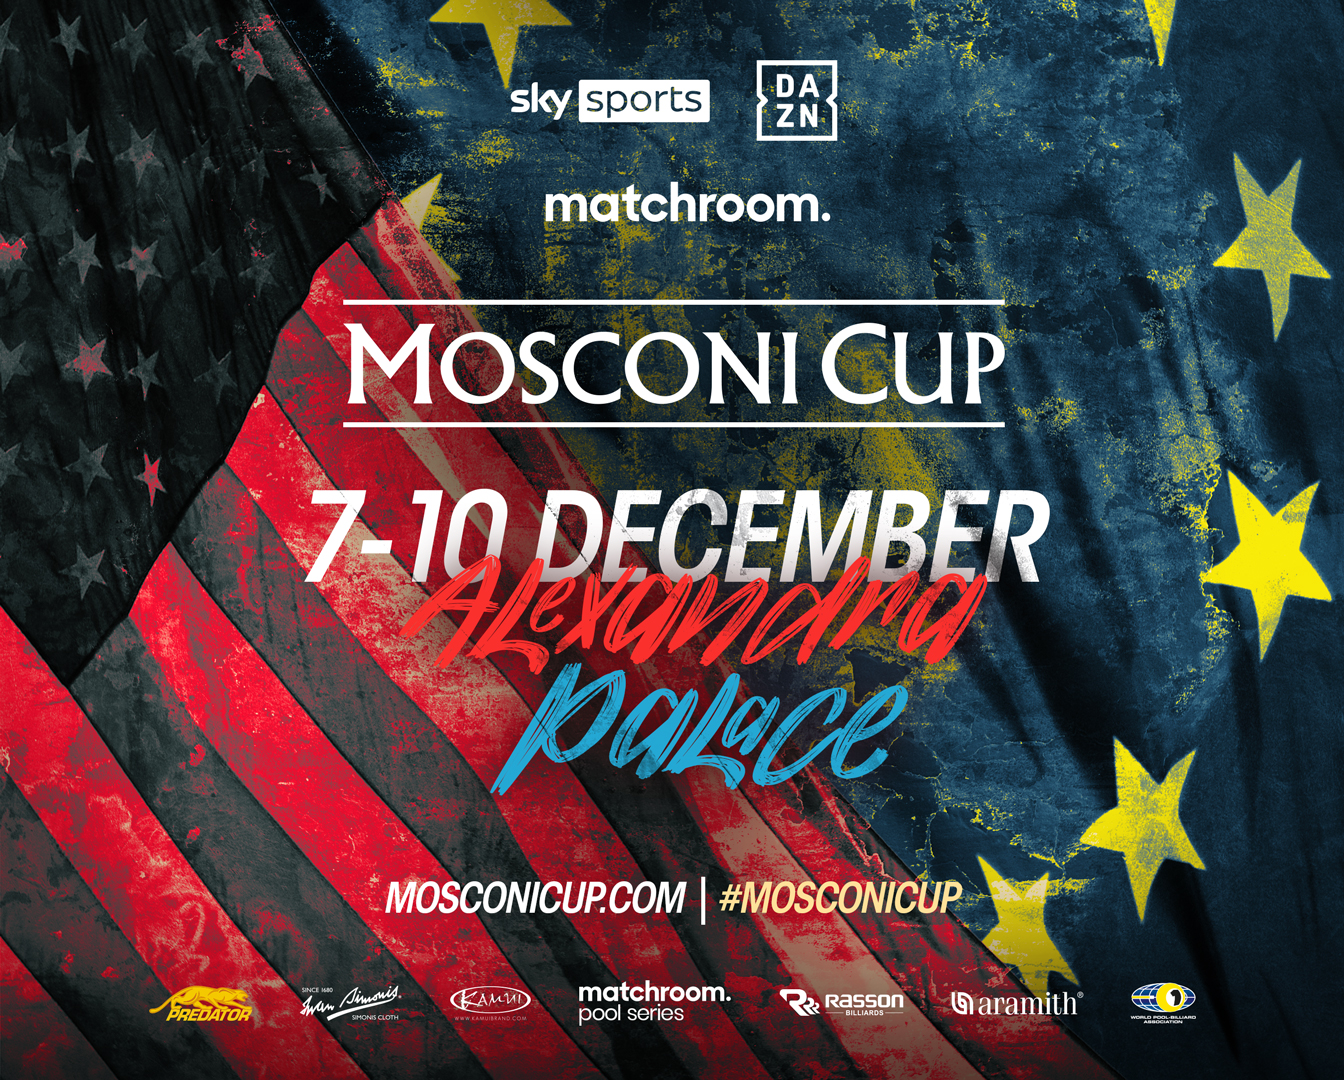 Mosconi Cup Ticket Sales Update